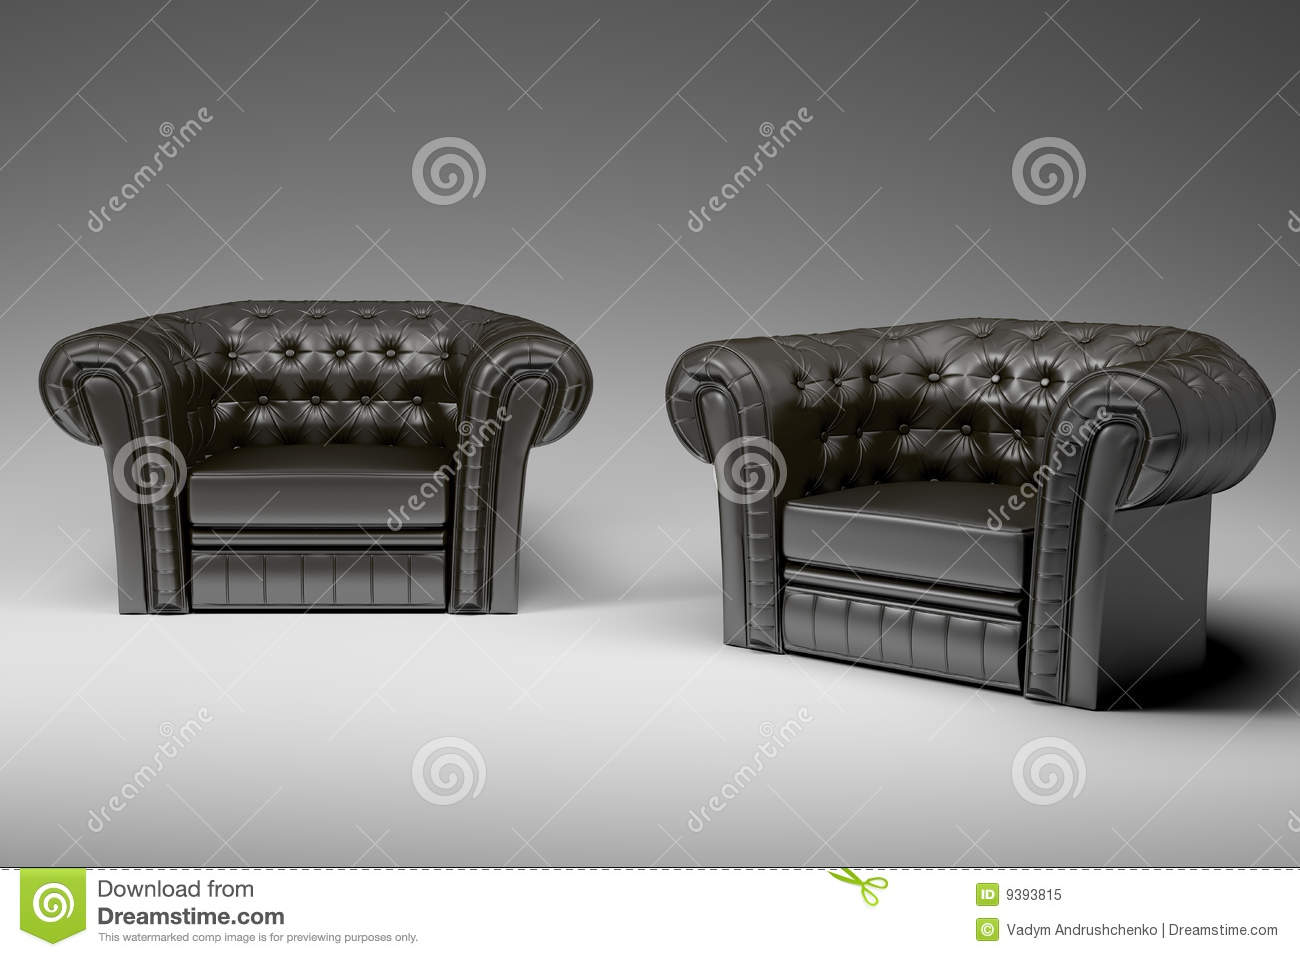 Black leather armchair 3d royalty free stock photo image 9393815